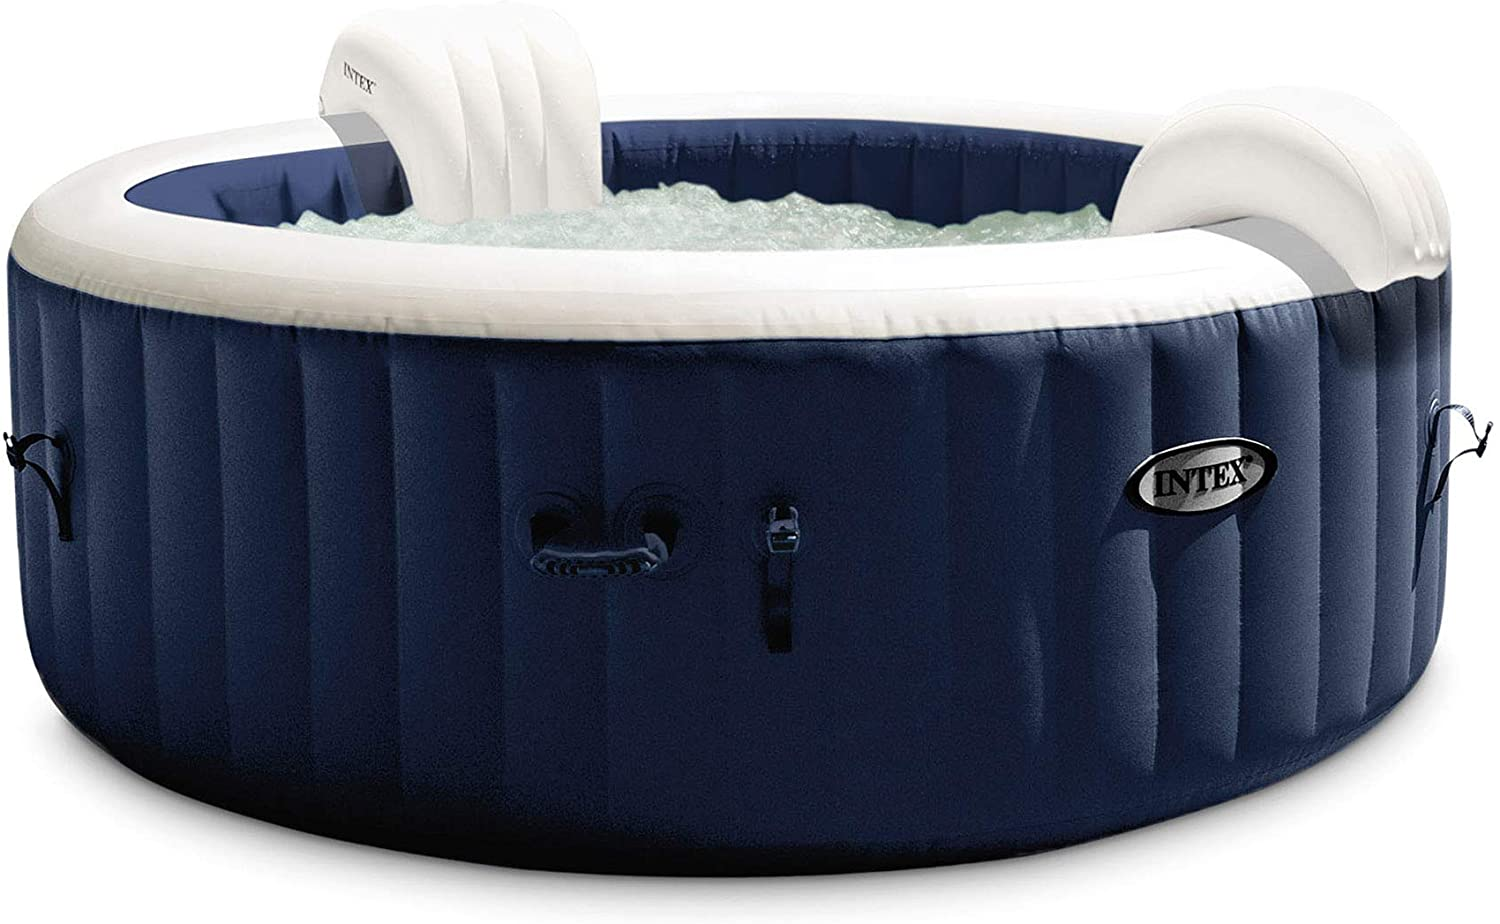 Review of Intex 28429E PureSpa - 4 Person Portable Inflatable Hot Tub Spa